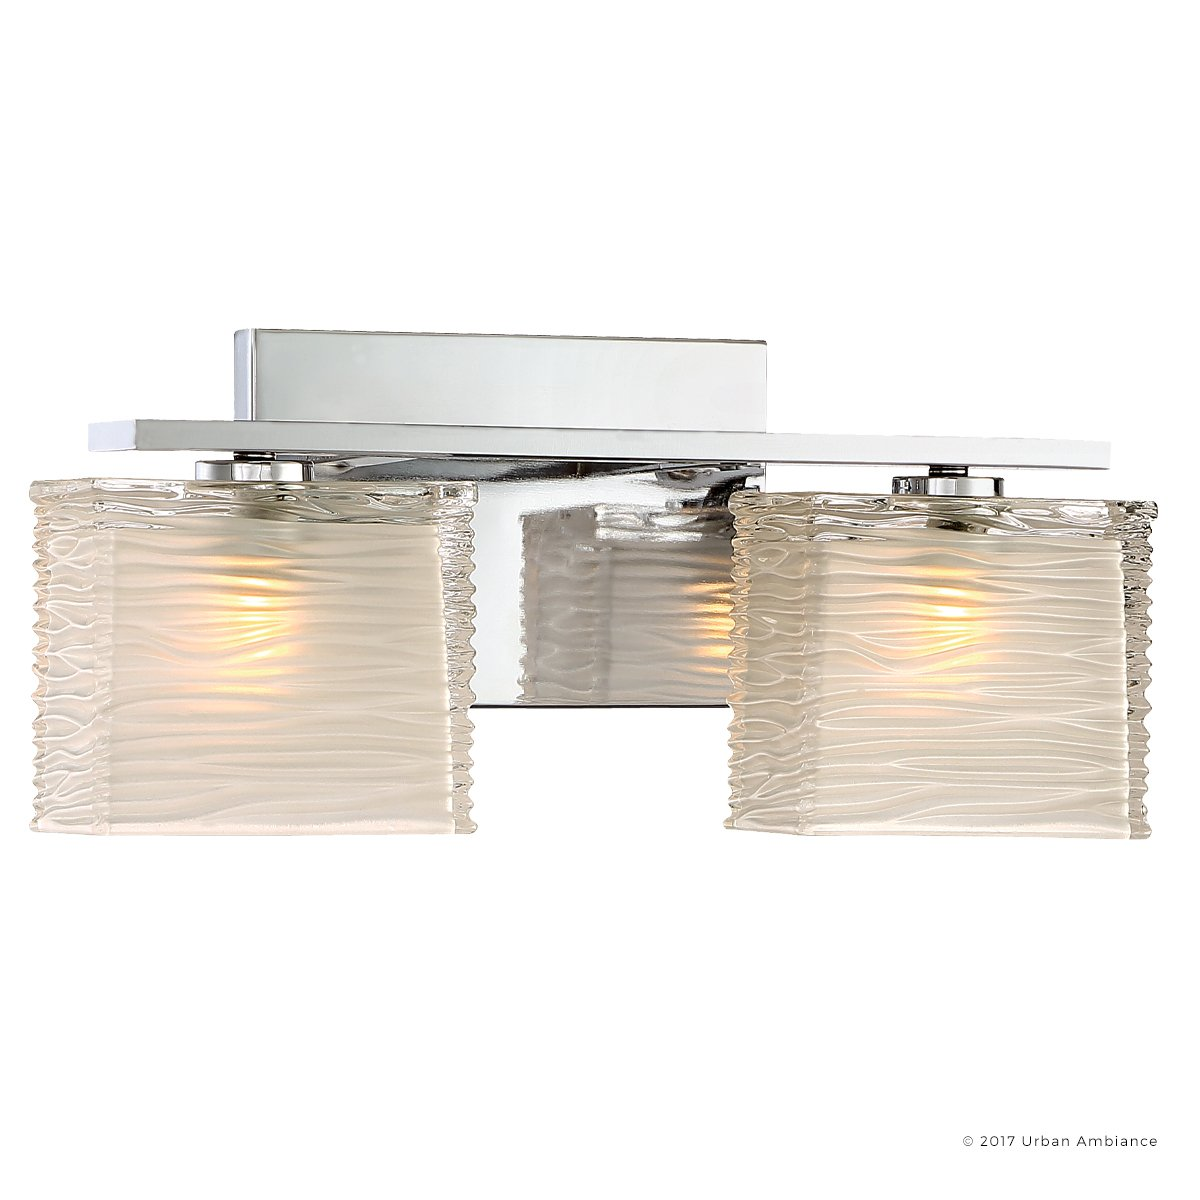 Luxury Modern Bathroom Light, Medium Size: 6.75''H x 15''W, with Style Elements, Polished Chrome Finish and Sandblasted Inner, Clear Wavy Outer Glass, G9 LED Technology, UQL2721 by Urban Ambiance